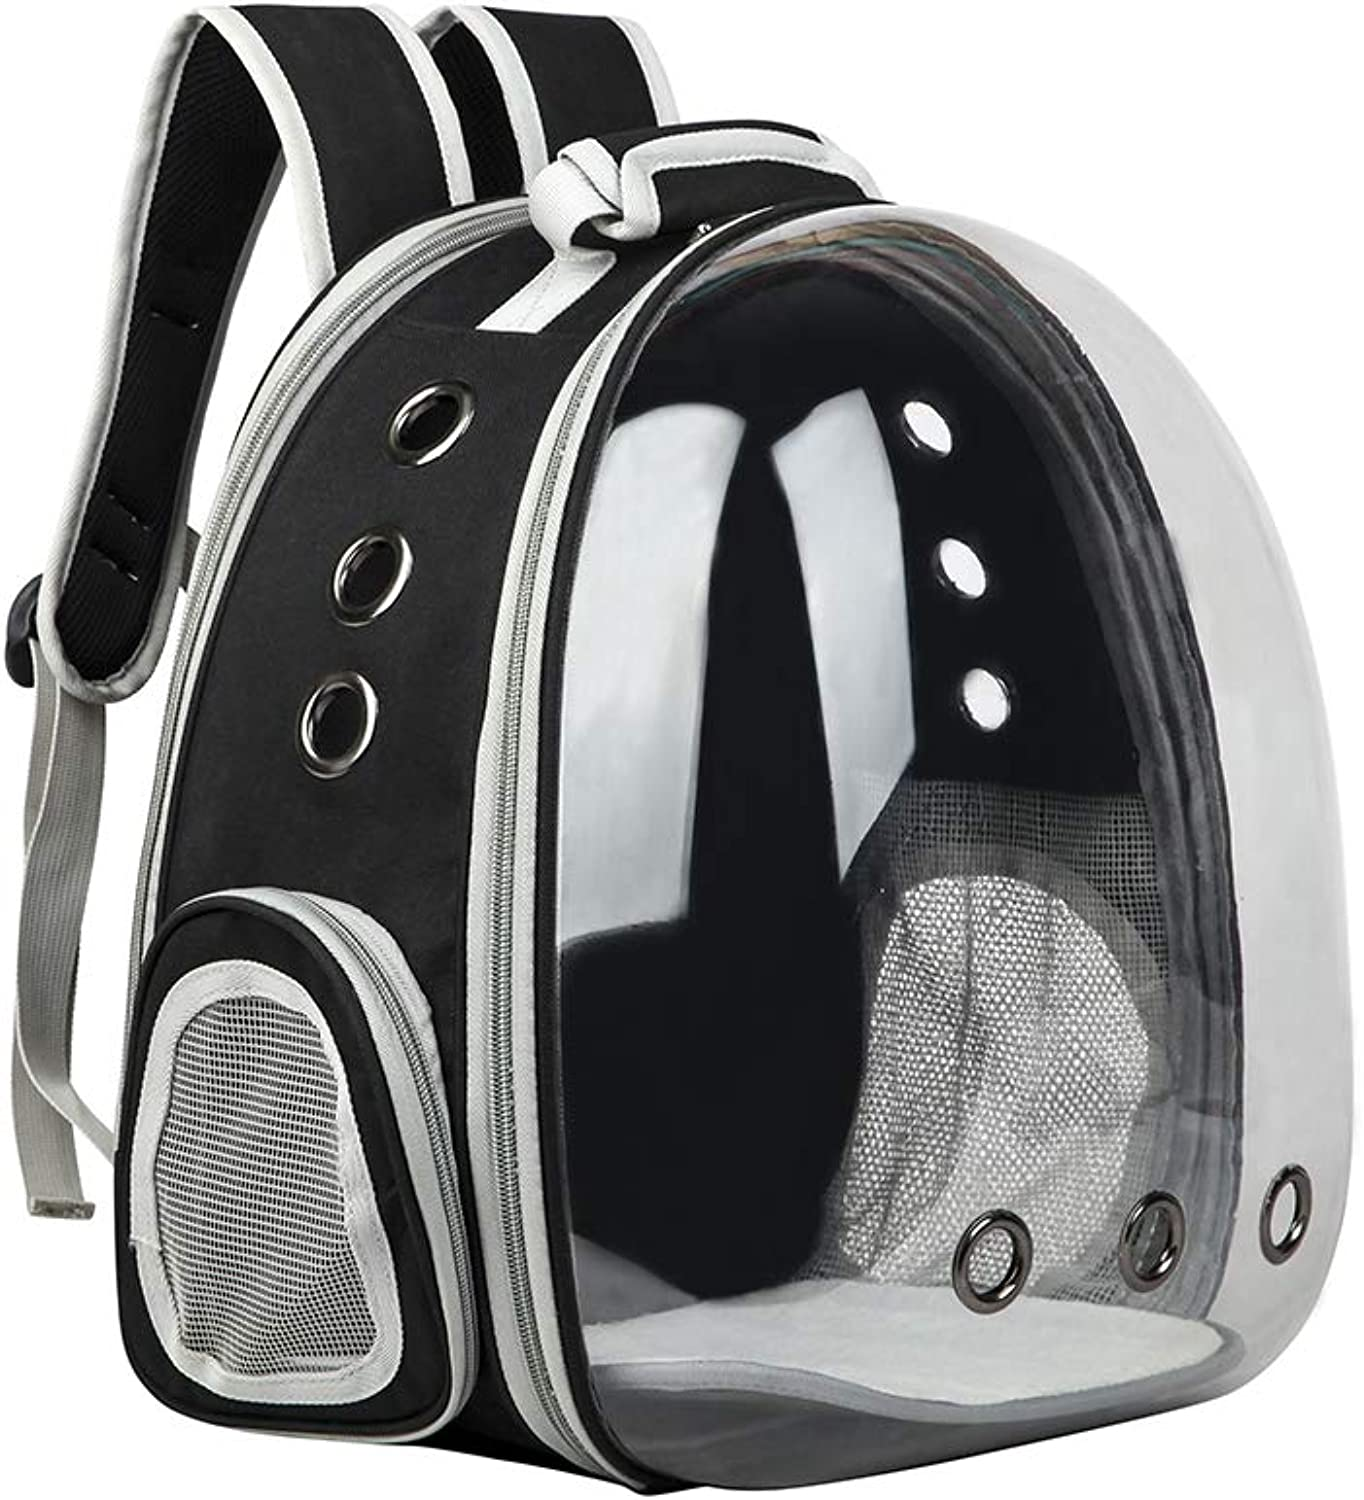 JAGETRADE Transparent Pet Carrier Waterproof Puppy Travel Bag Breathable Space Capsule Backpack for Cat Dog